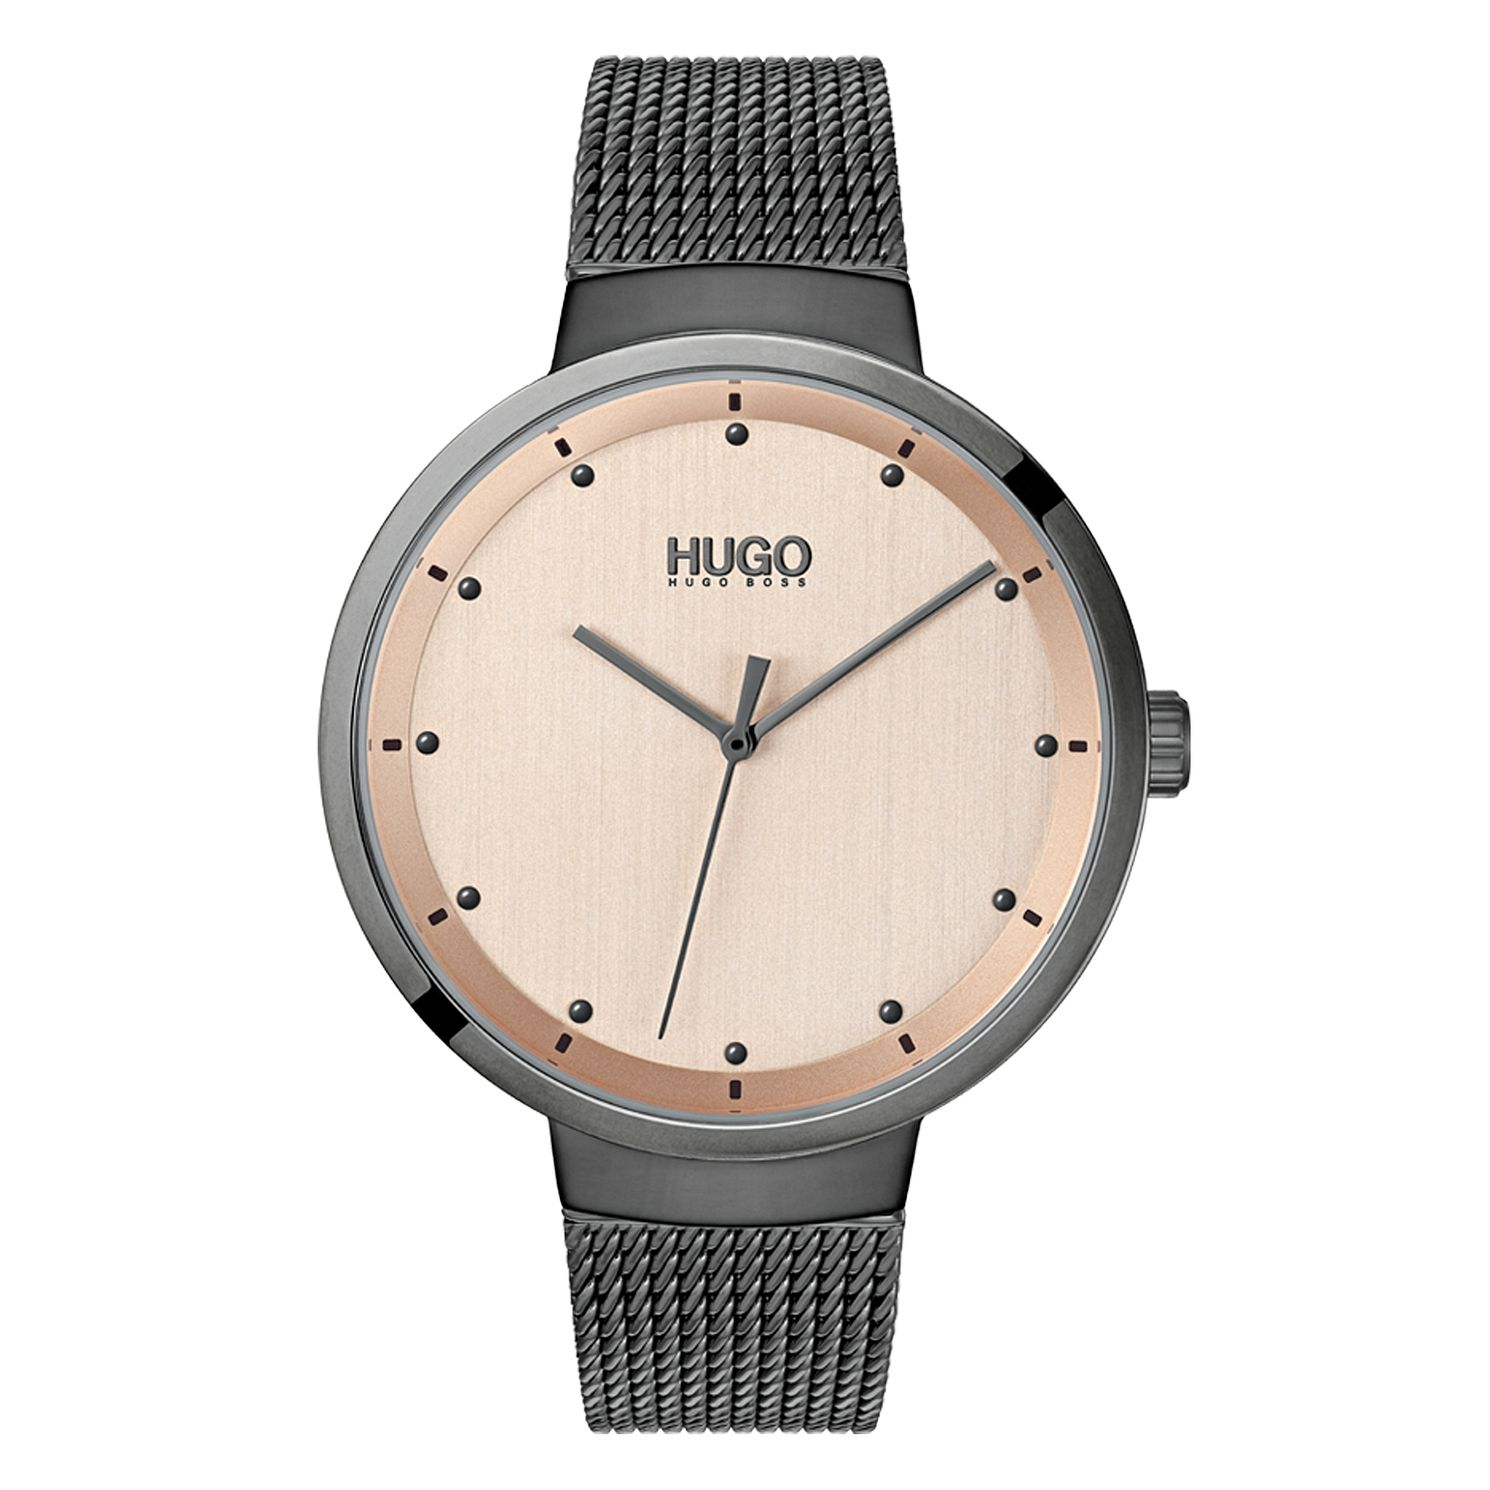 HUGO GO Ladies' Grey IP Mesh Bracelet Watch - Product number 2874164